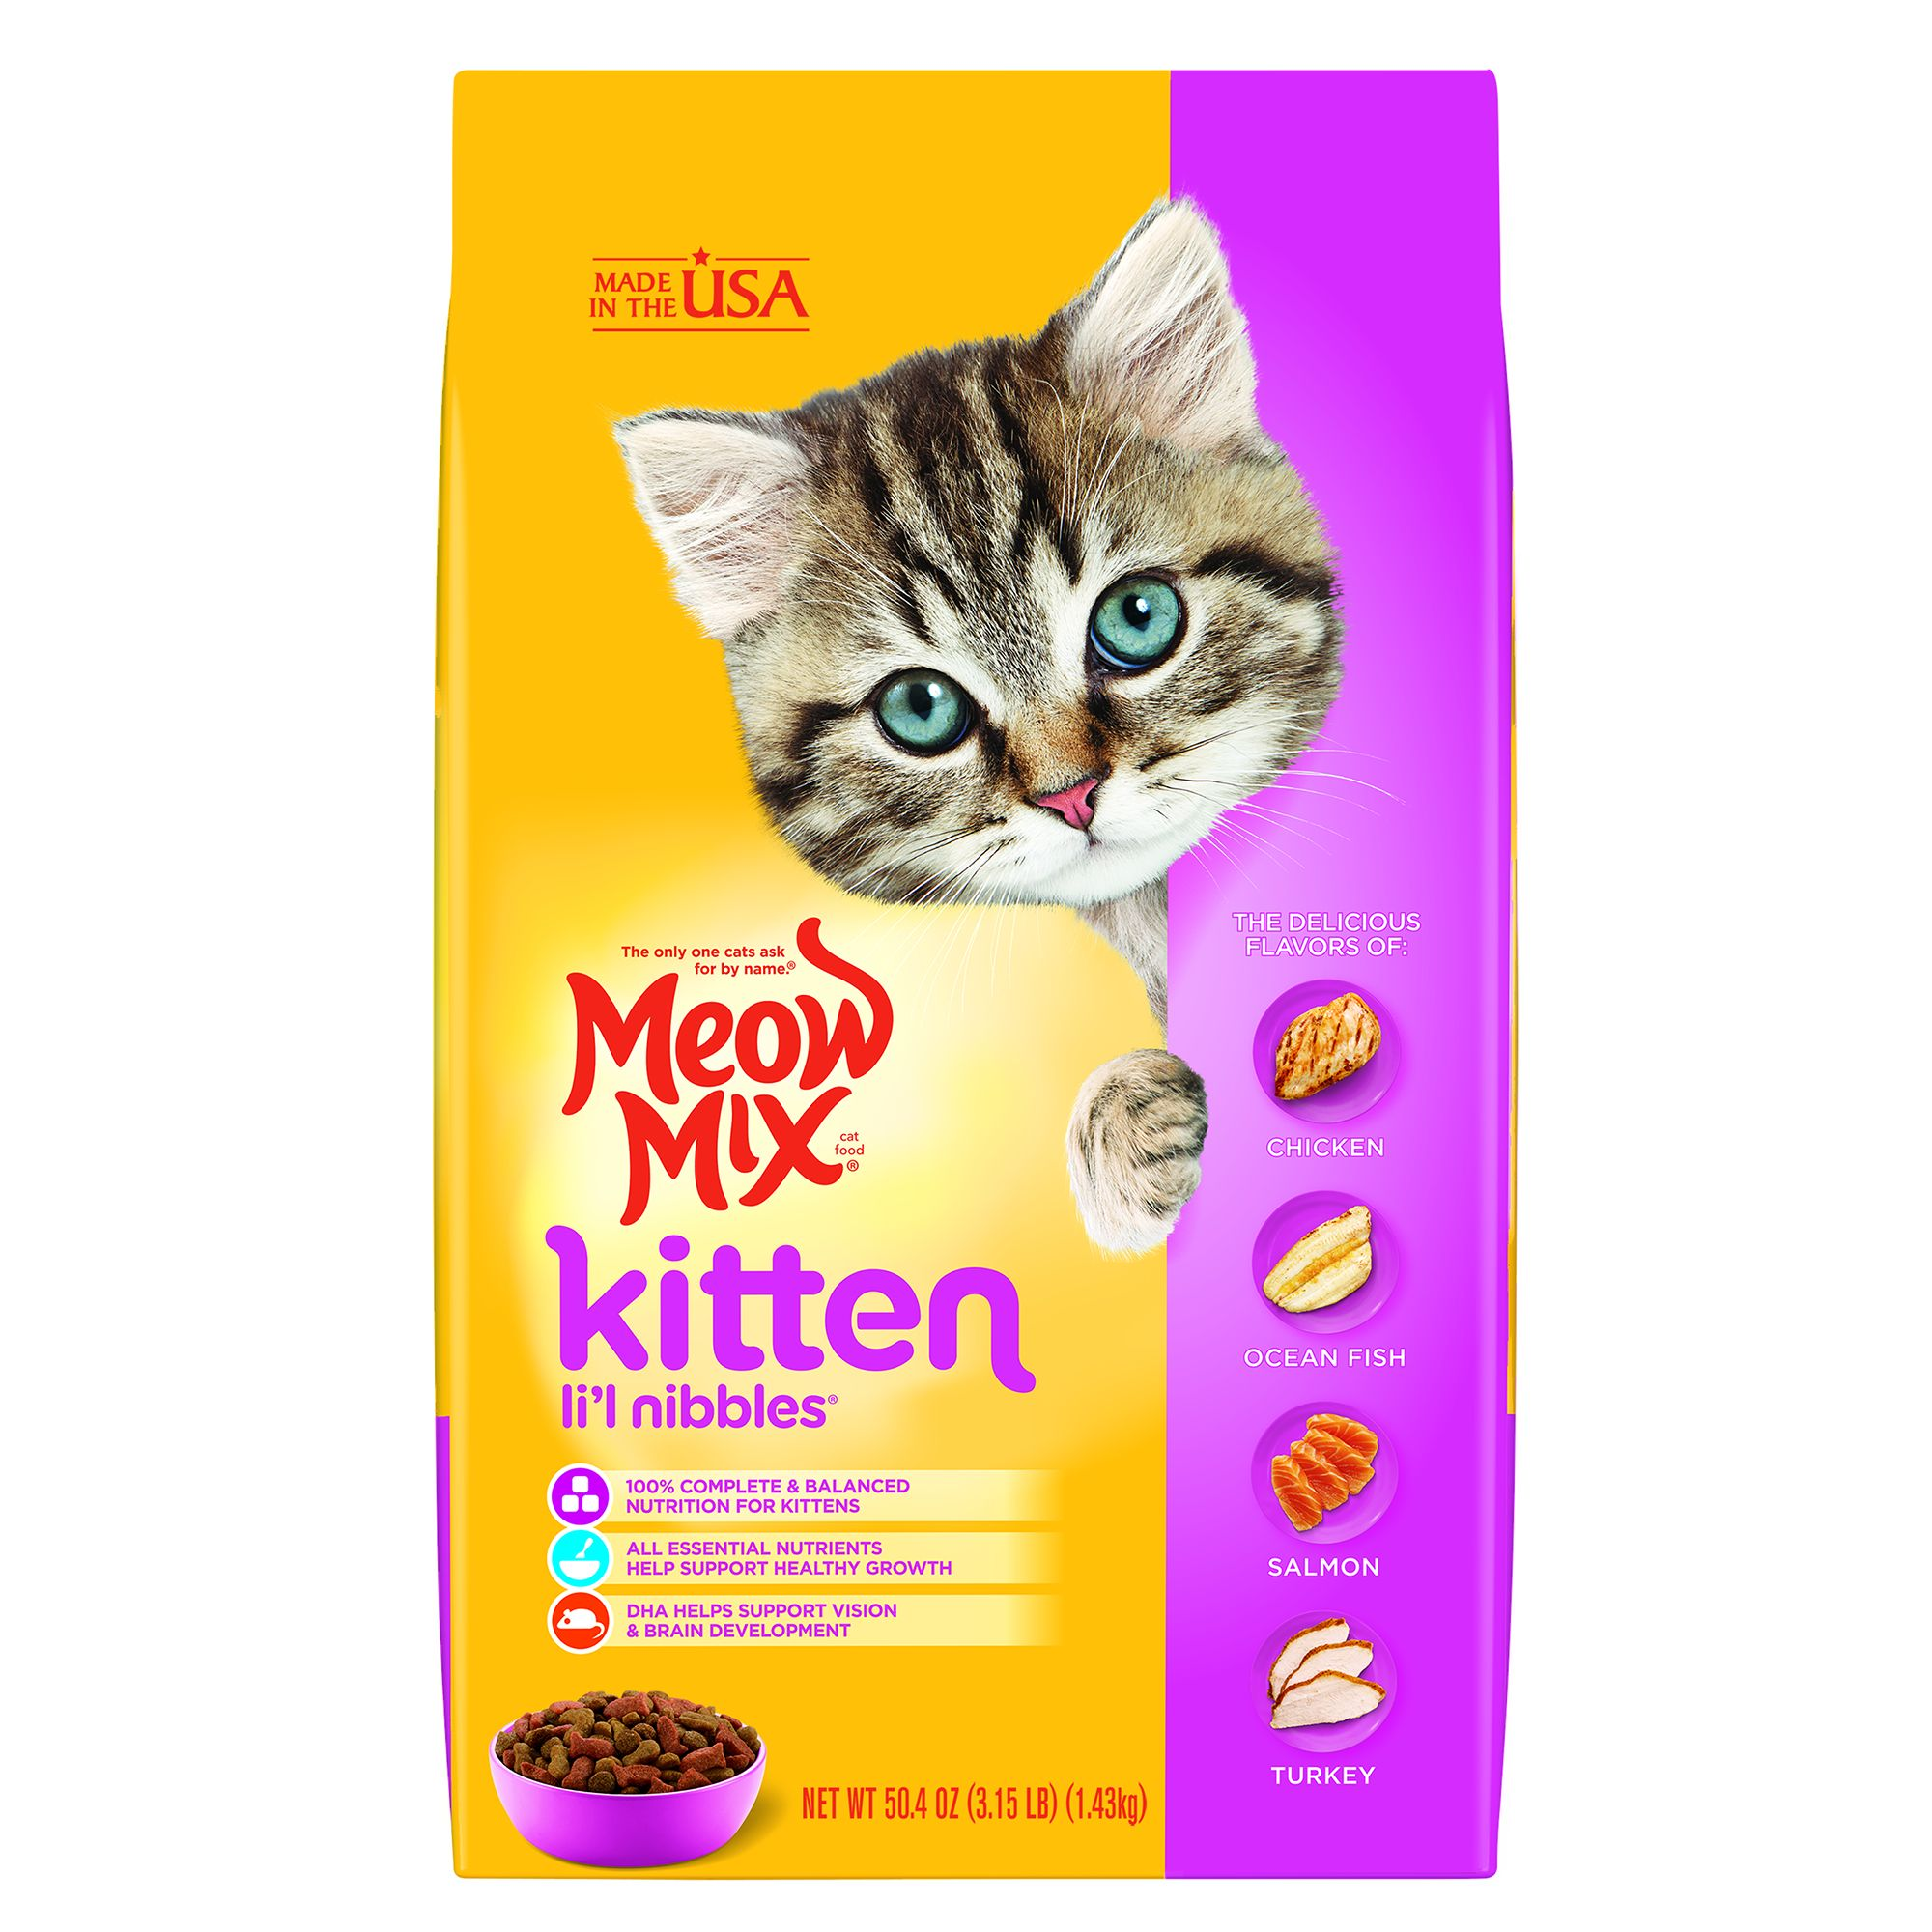 Meow Mix® Li'l Nibbles Kitten Food size: 3.15 Lb